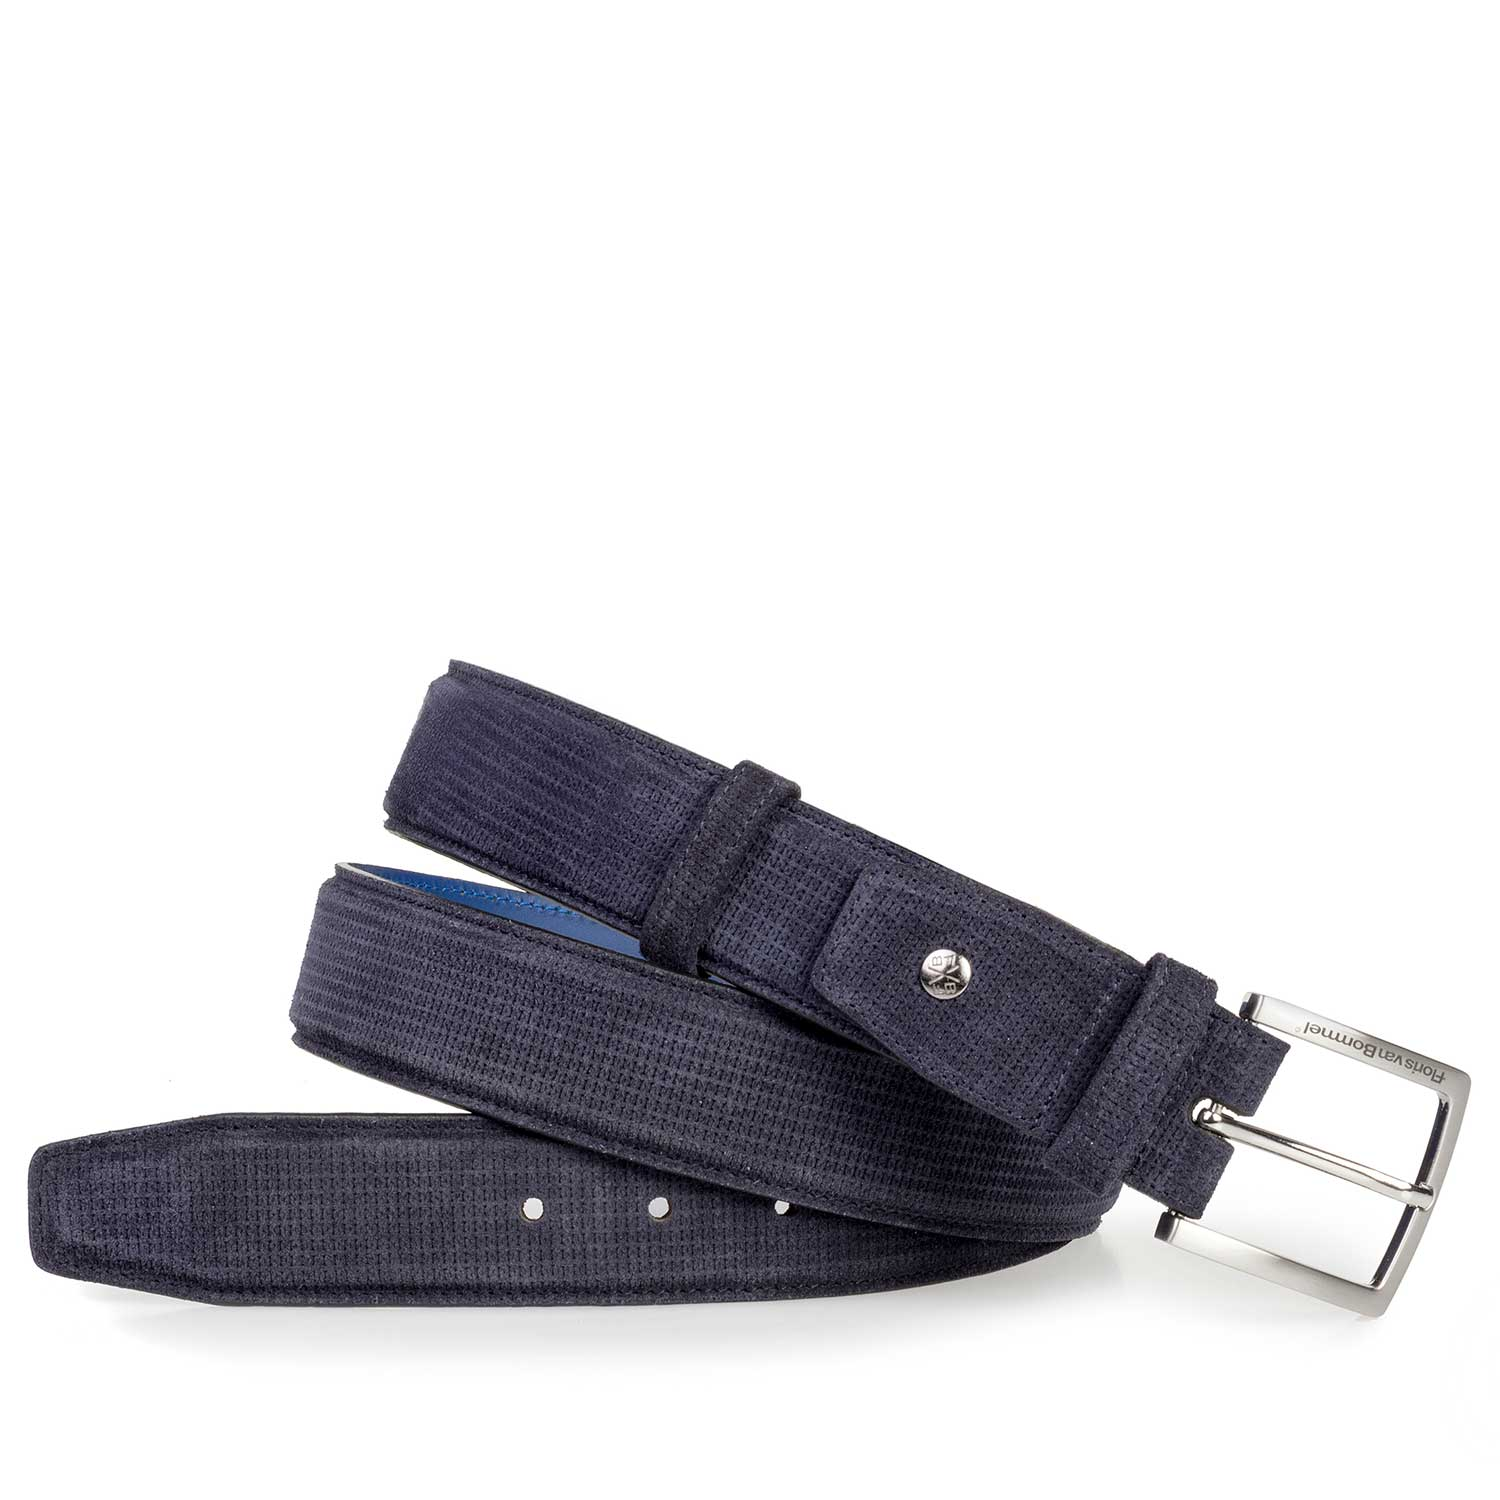 75181/09 - Blue suede leather belt with pattern